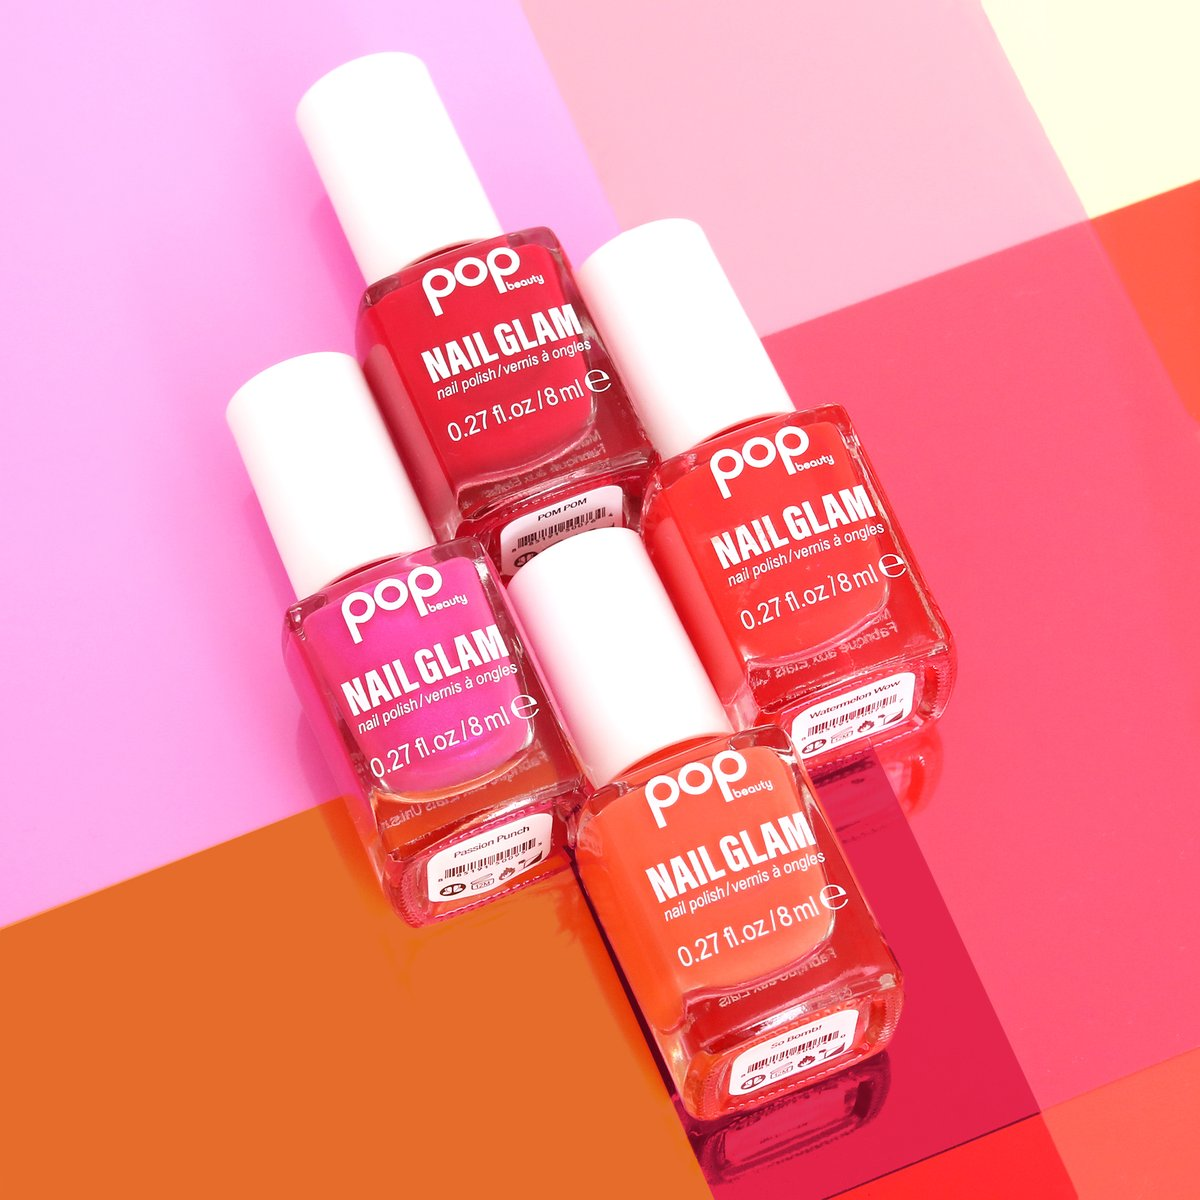 With added nylon to help strengthen and create a non-chip barrier, Nail Glam is here to help you make it POP - unapologetically! #POPbeauty #MakeItPOP https://t.co/LDMWKGB75f